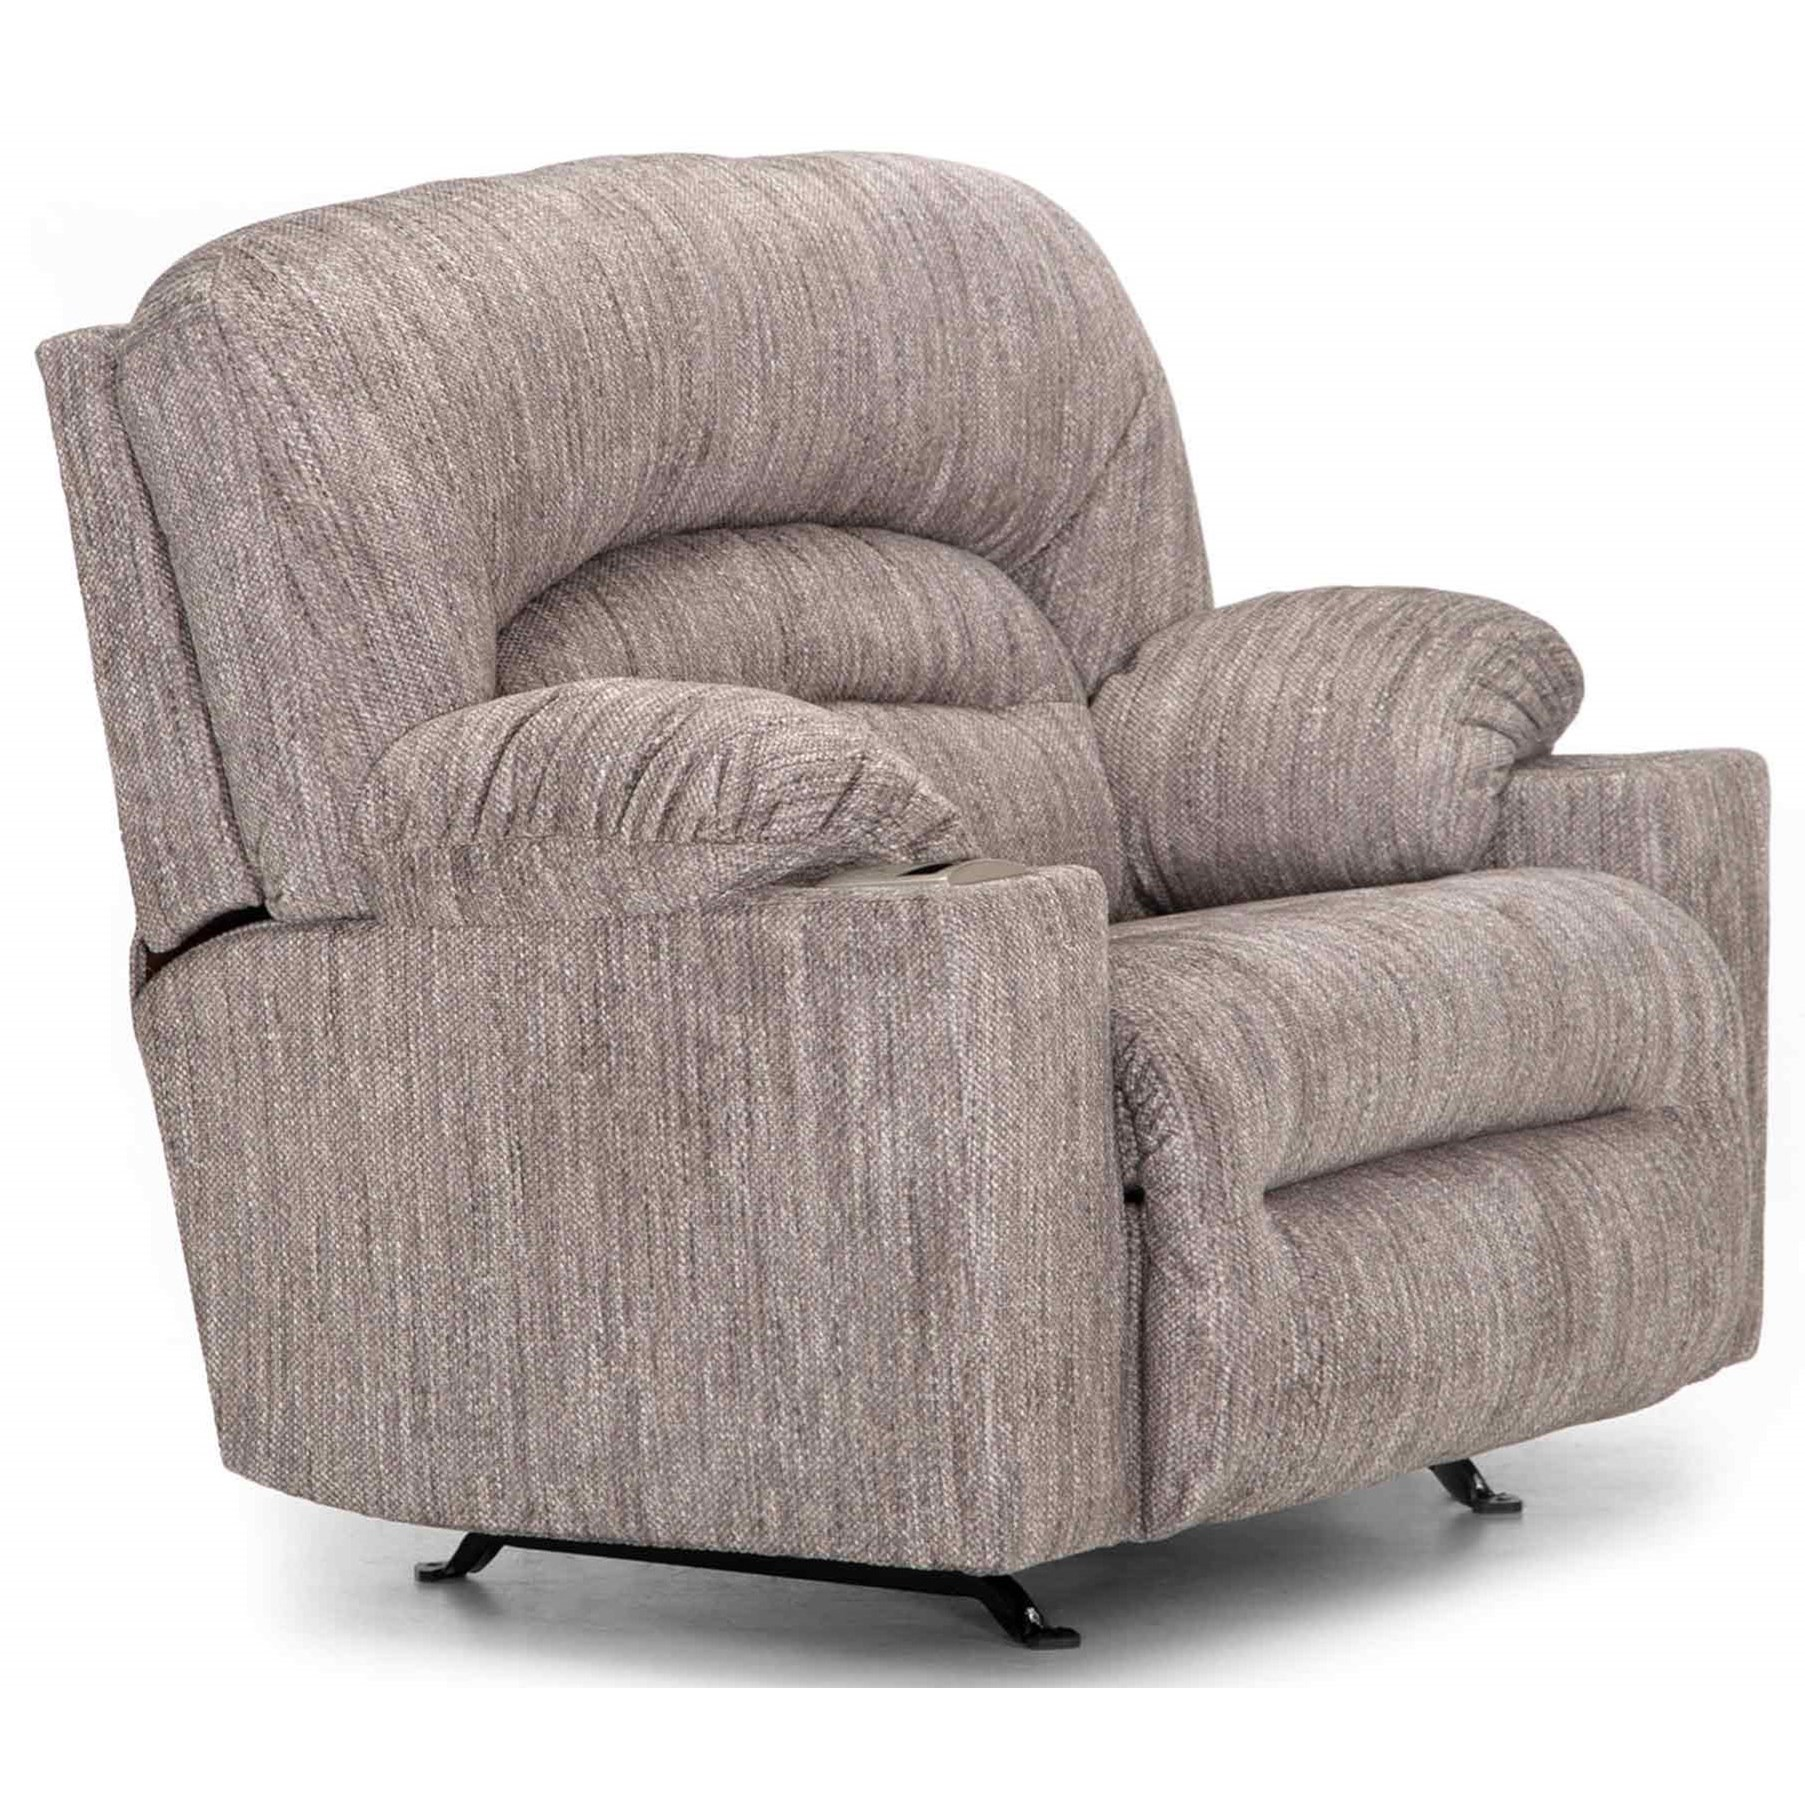 Franklin Recliners Recliner by Franklin at Turk Furniture